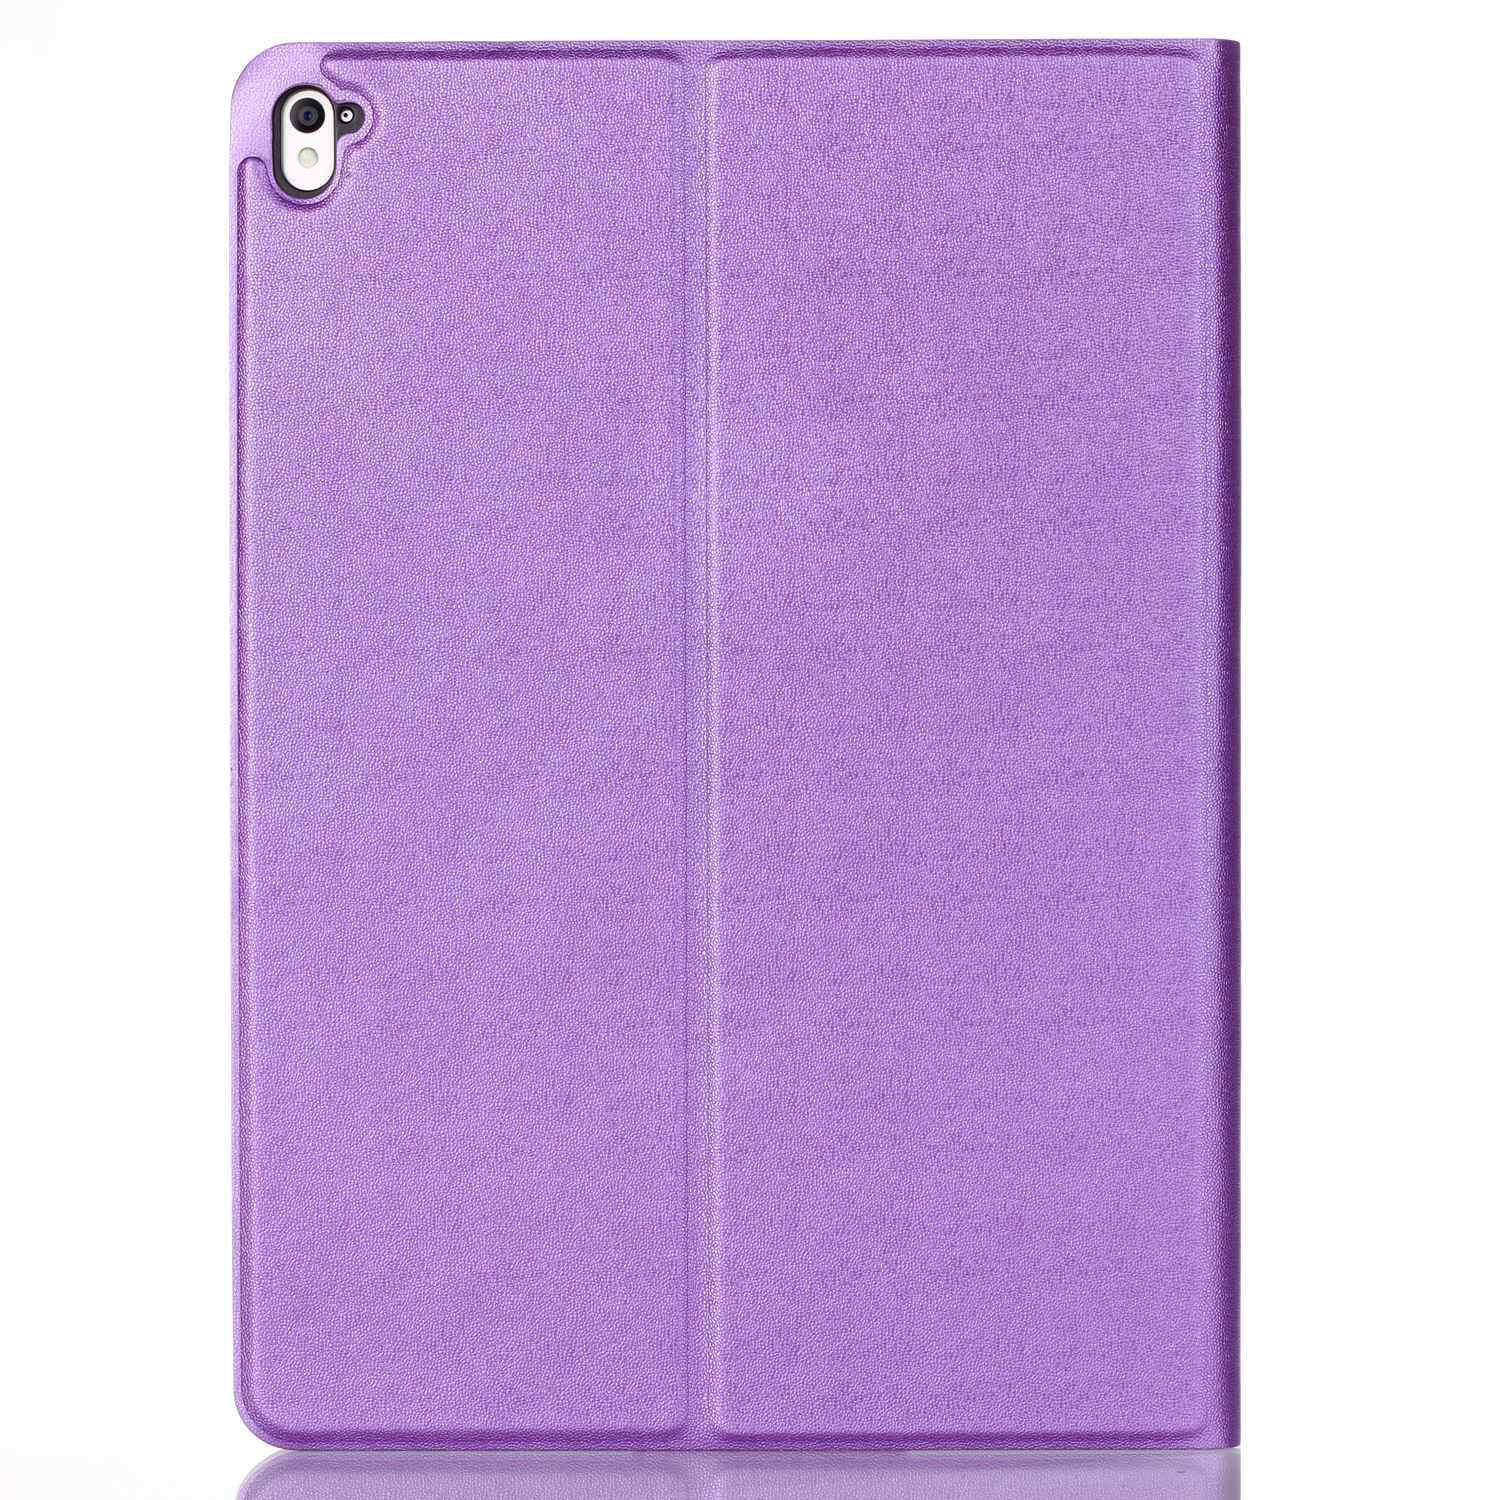 Custodia-Per-Apple-IPAD-Pro-IN-9-7-Pollici-Case-Cover-Protettiva-Skin-Shell miniatura 32